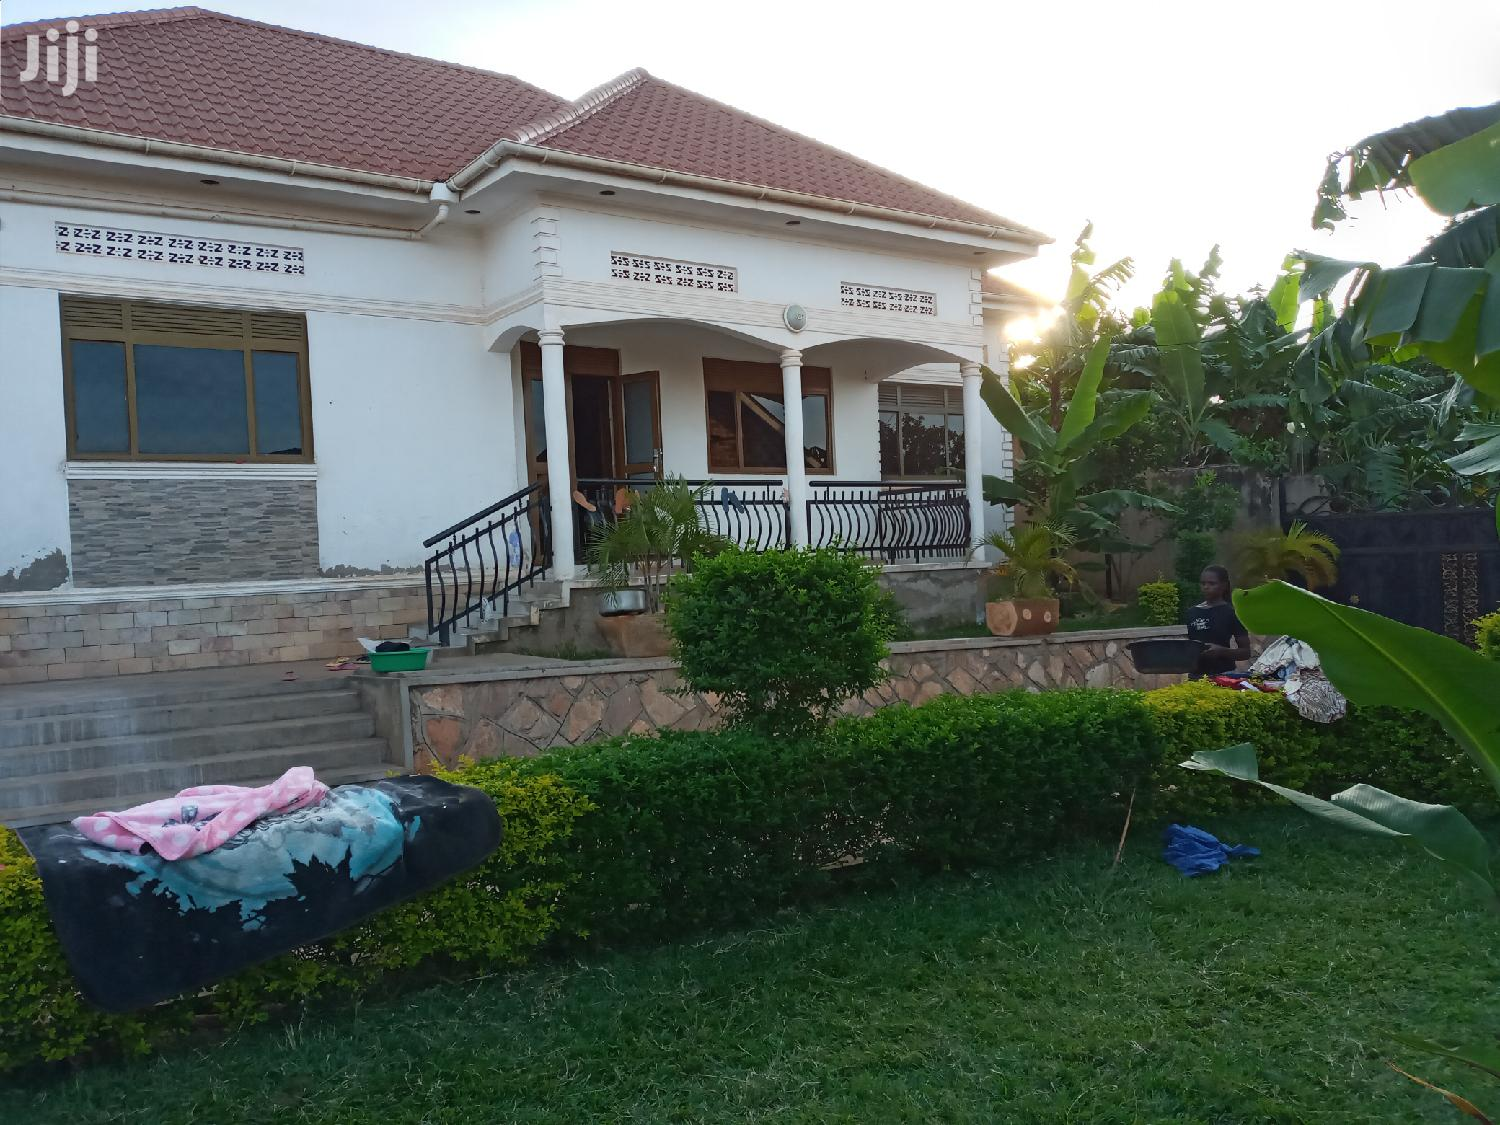 Three Bedroom House In Munyonyo For Sale | Houses & Apartments For Sale for sale in Kampala, Central Region, Uganda